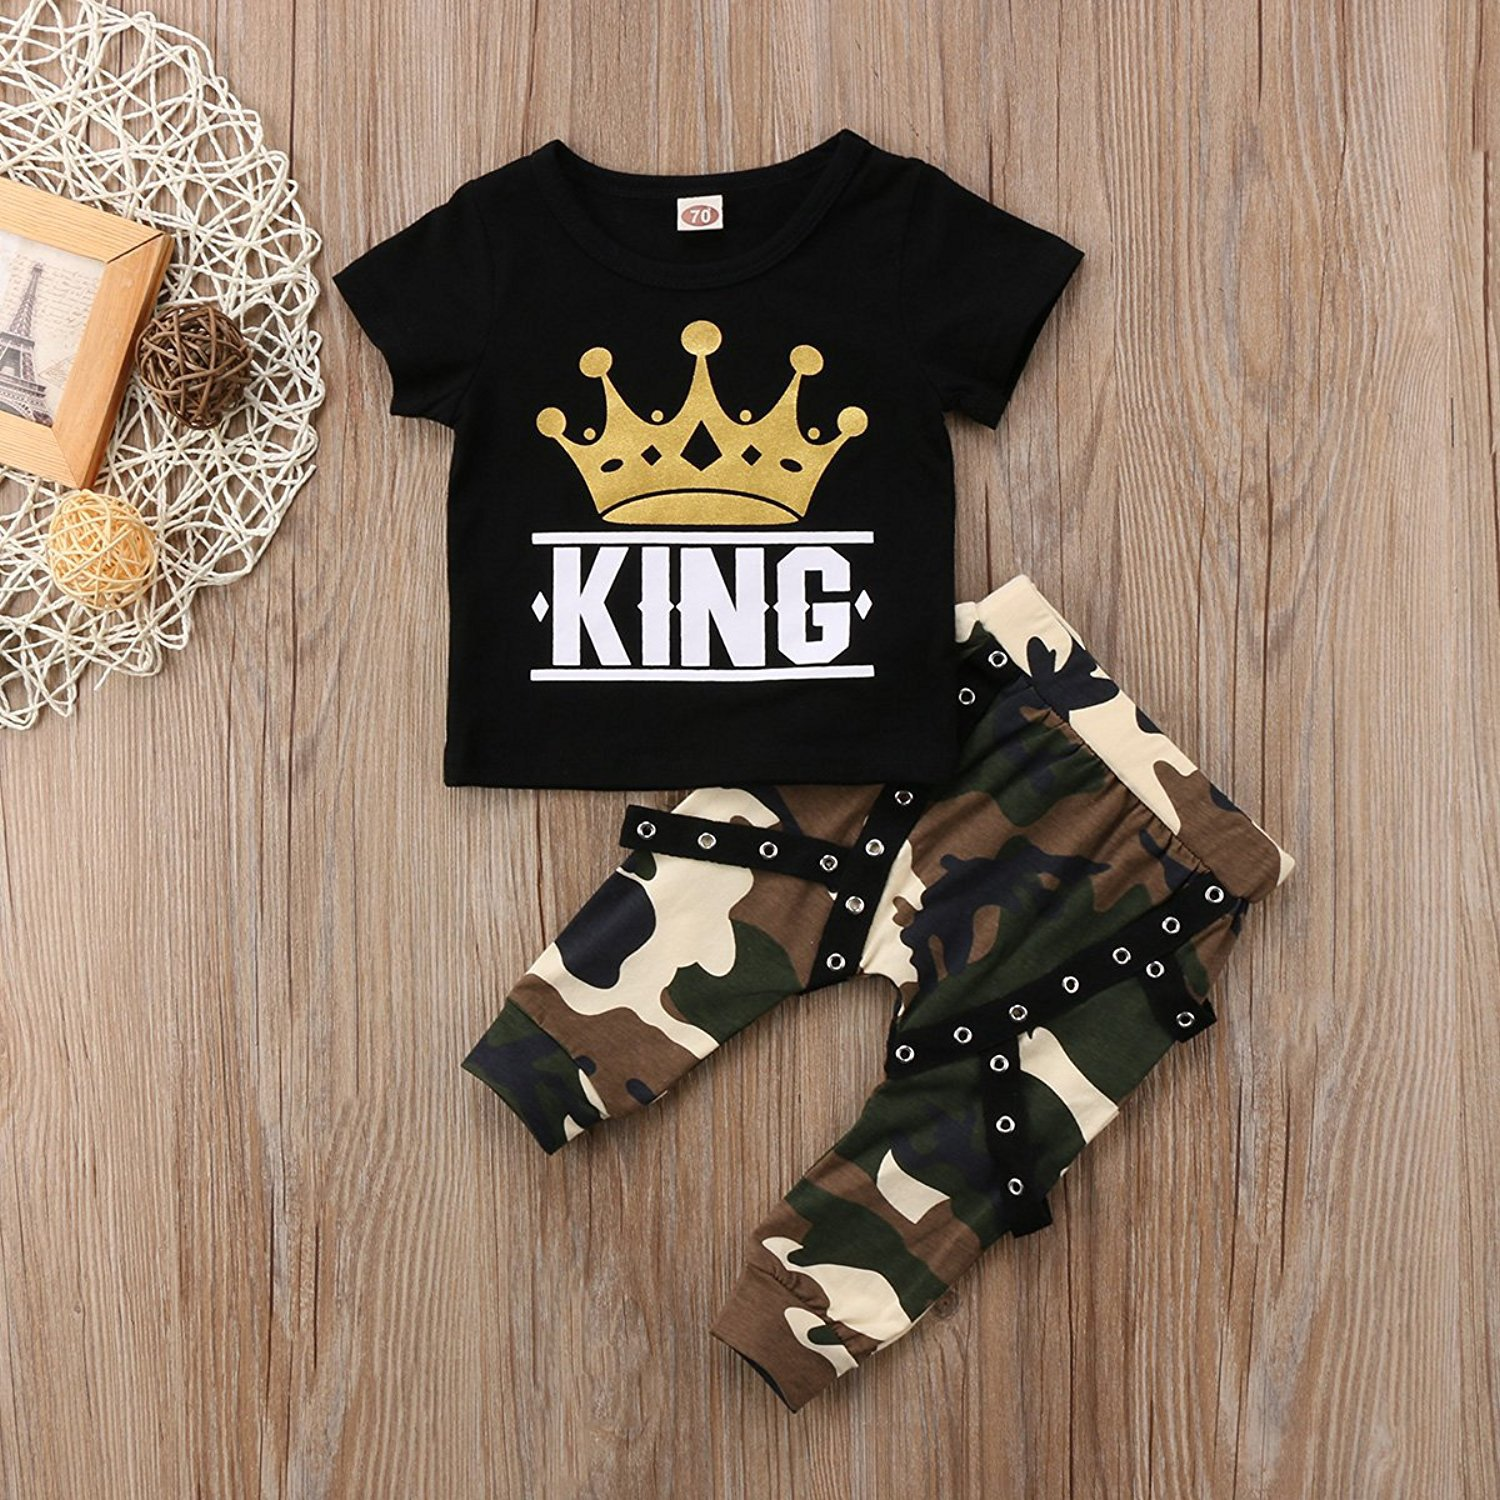 d0326882c35d Amazon.com  Toddler Baby Boy Clothes King Long Sleeve Black T-Shirt ...